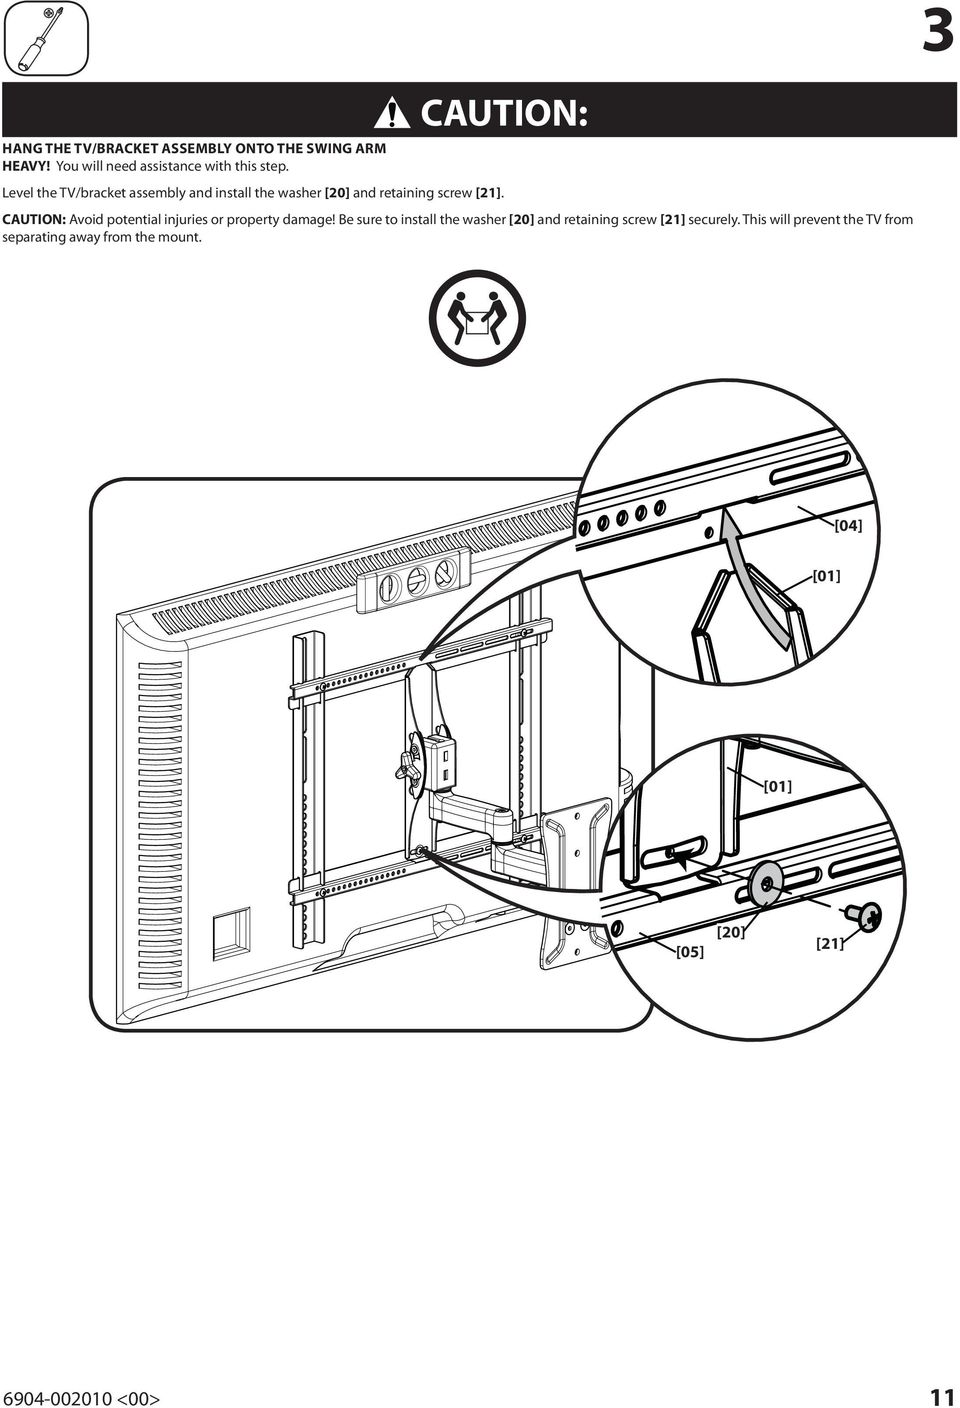 Level the TV/bracket assembly and install the washer [20] and retaining screw [21].